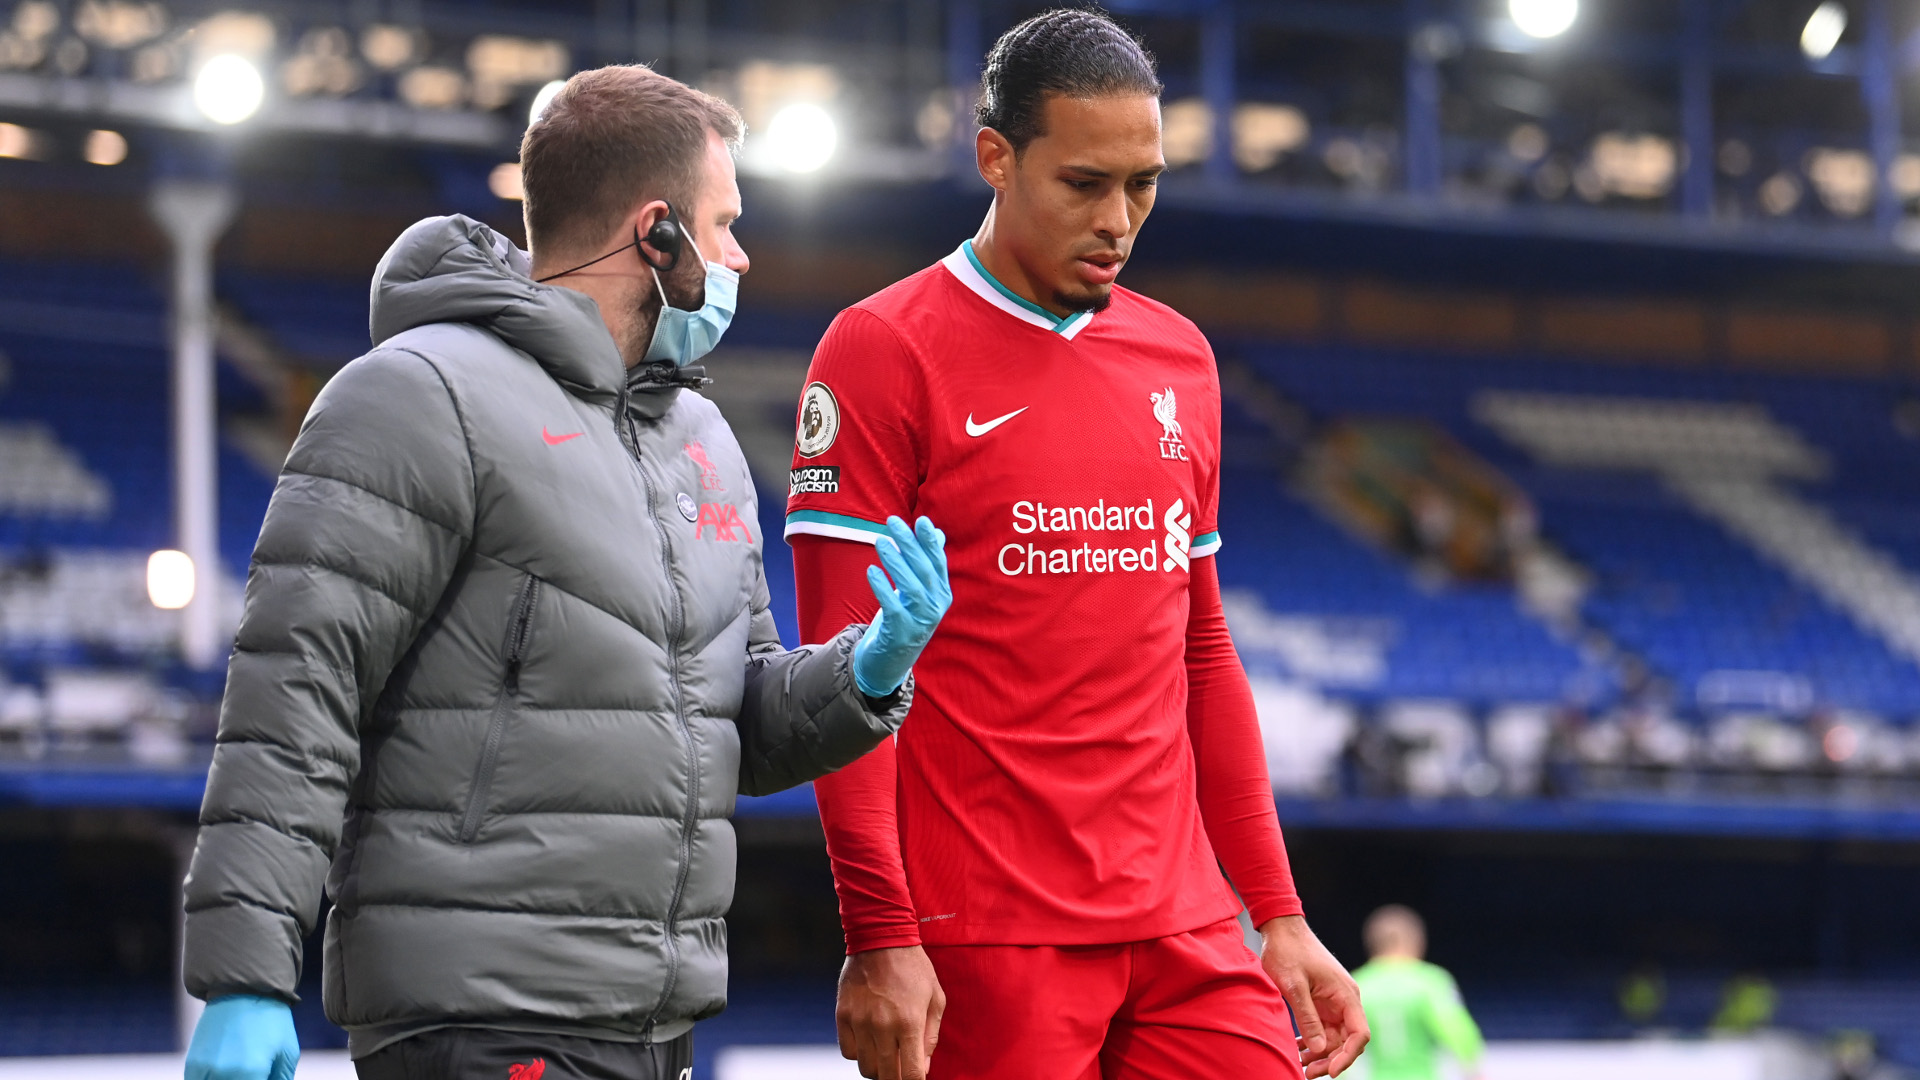 Klopp unsure over Van Dijk return despite 'very promising' rehabilitation